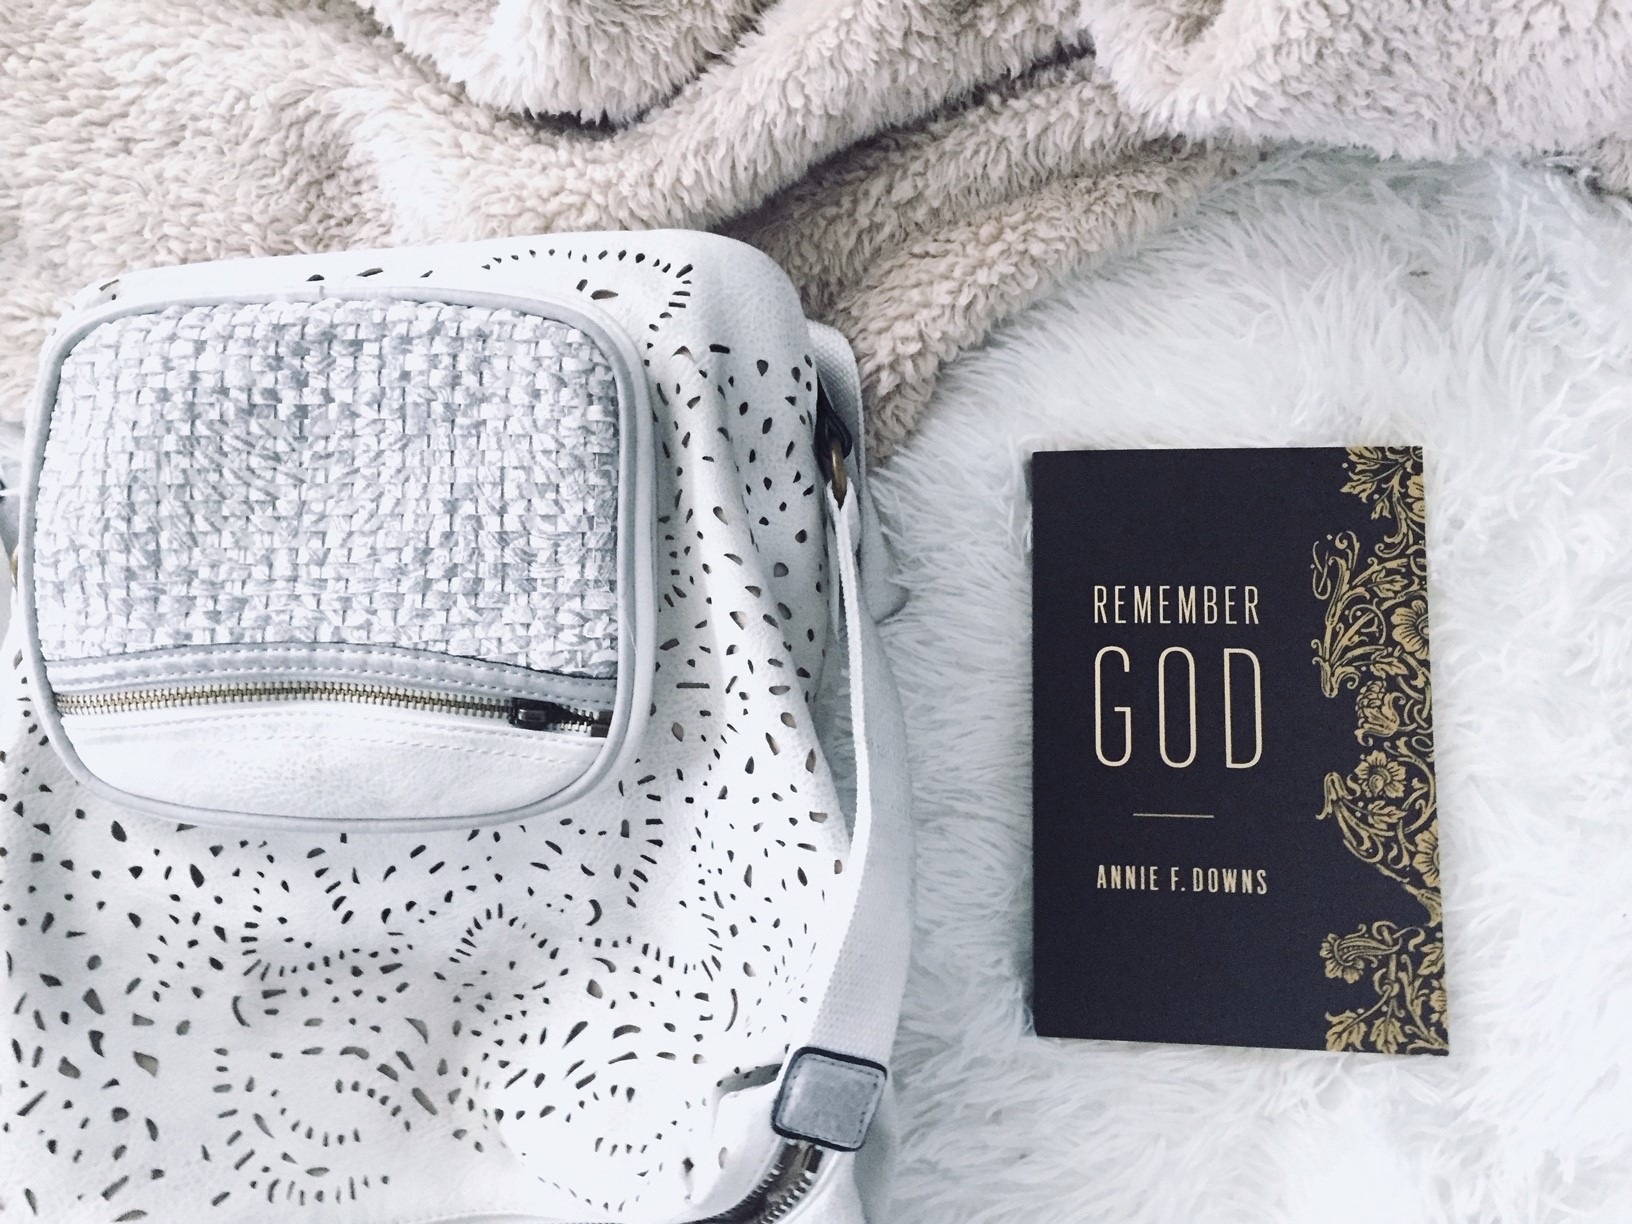 Remember God by Annie F. Downs